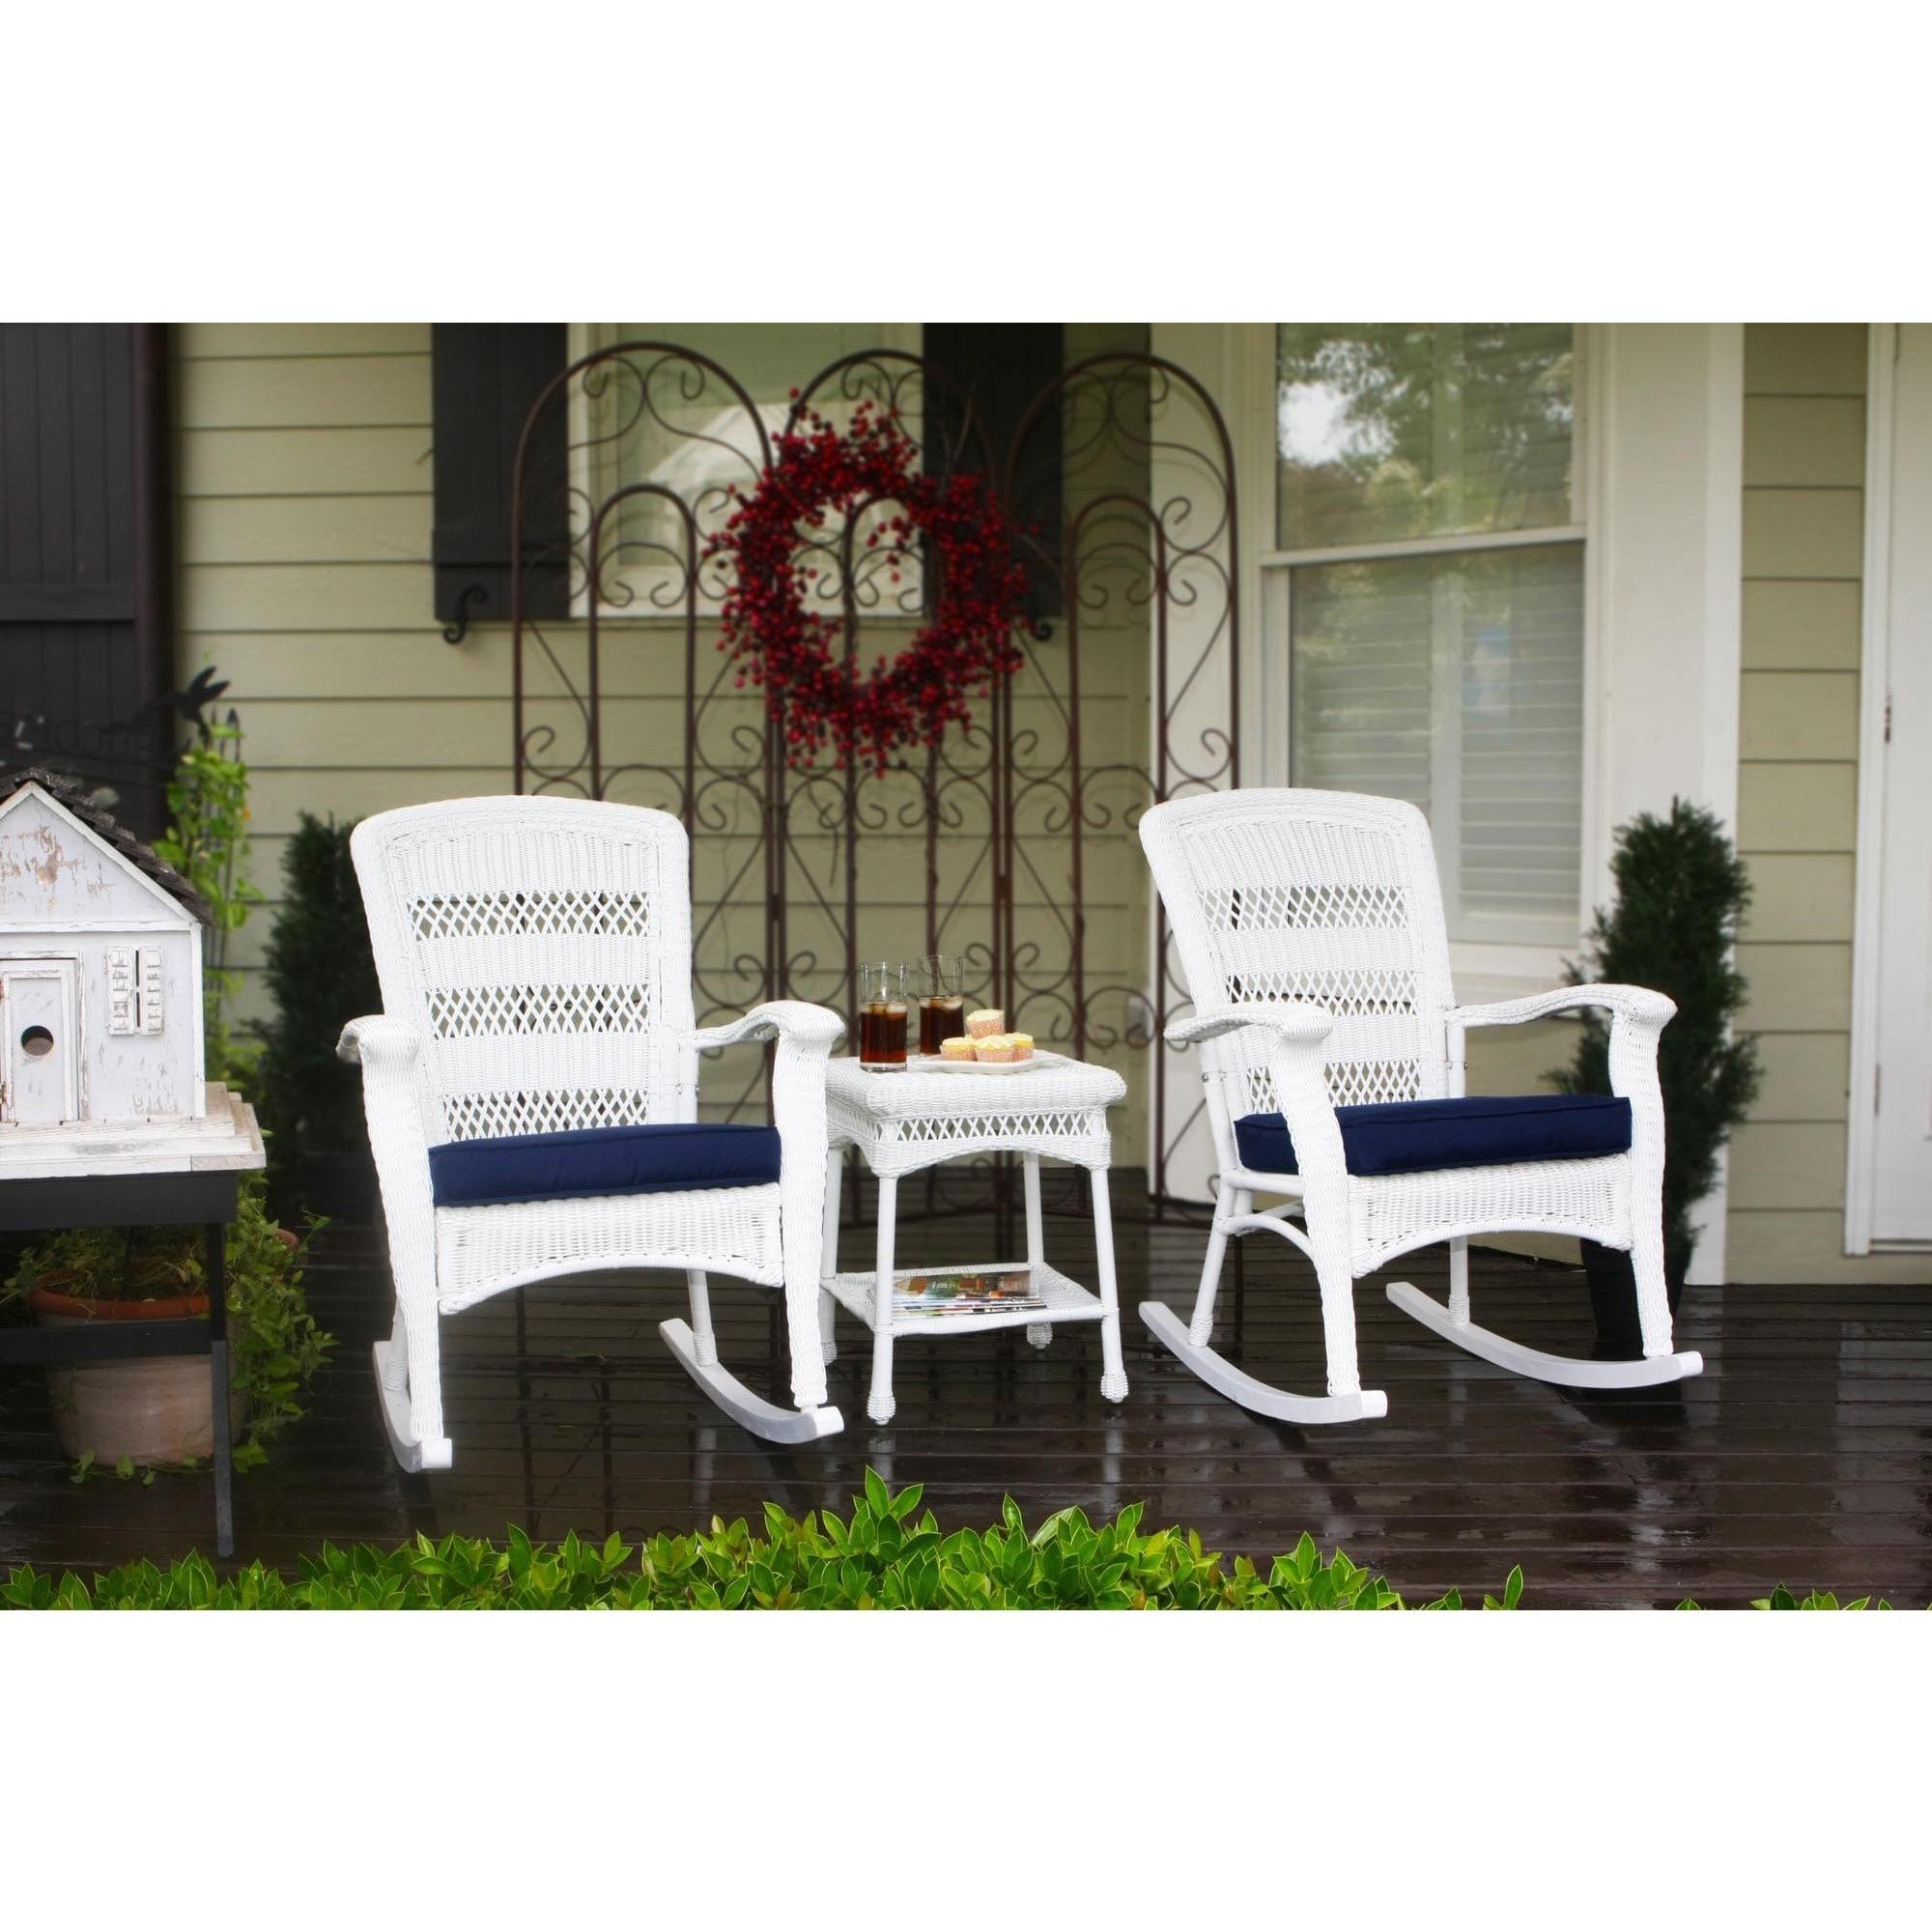 white resin wicker chairs chair stools with arms shop havenside home avoca coastal outdoor plantation rocking and table set pack of 3